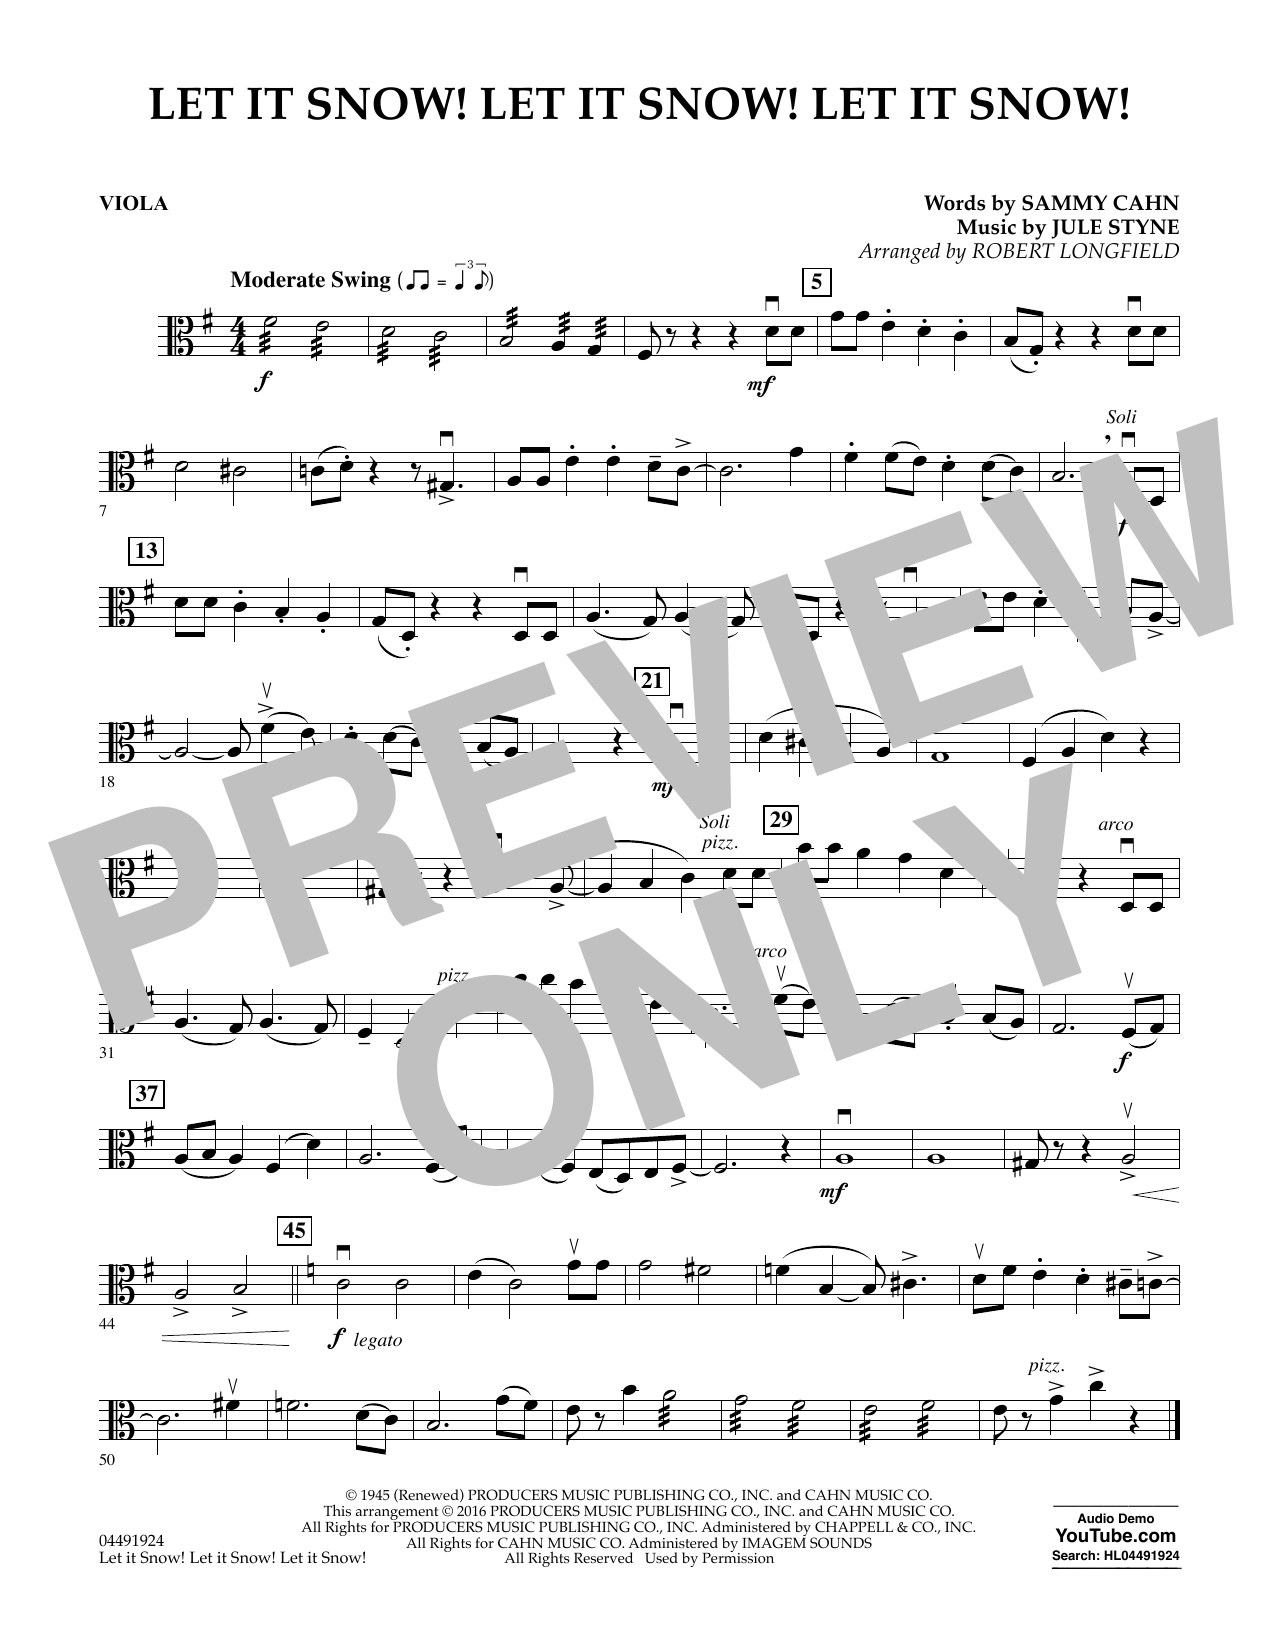 Let It Snow! Let It Snow! Let It Snow! - Viola Sheet Music